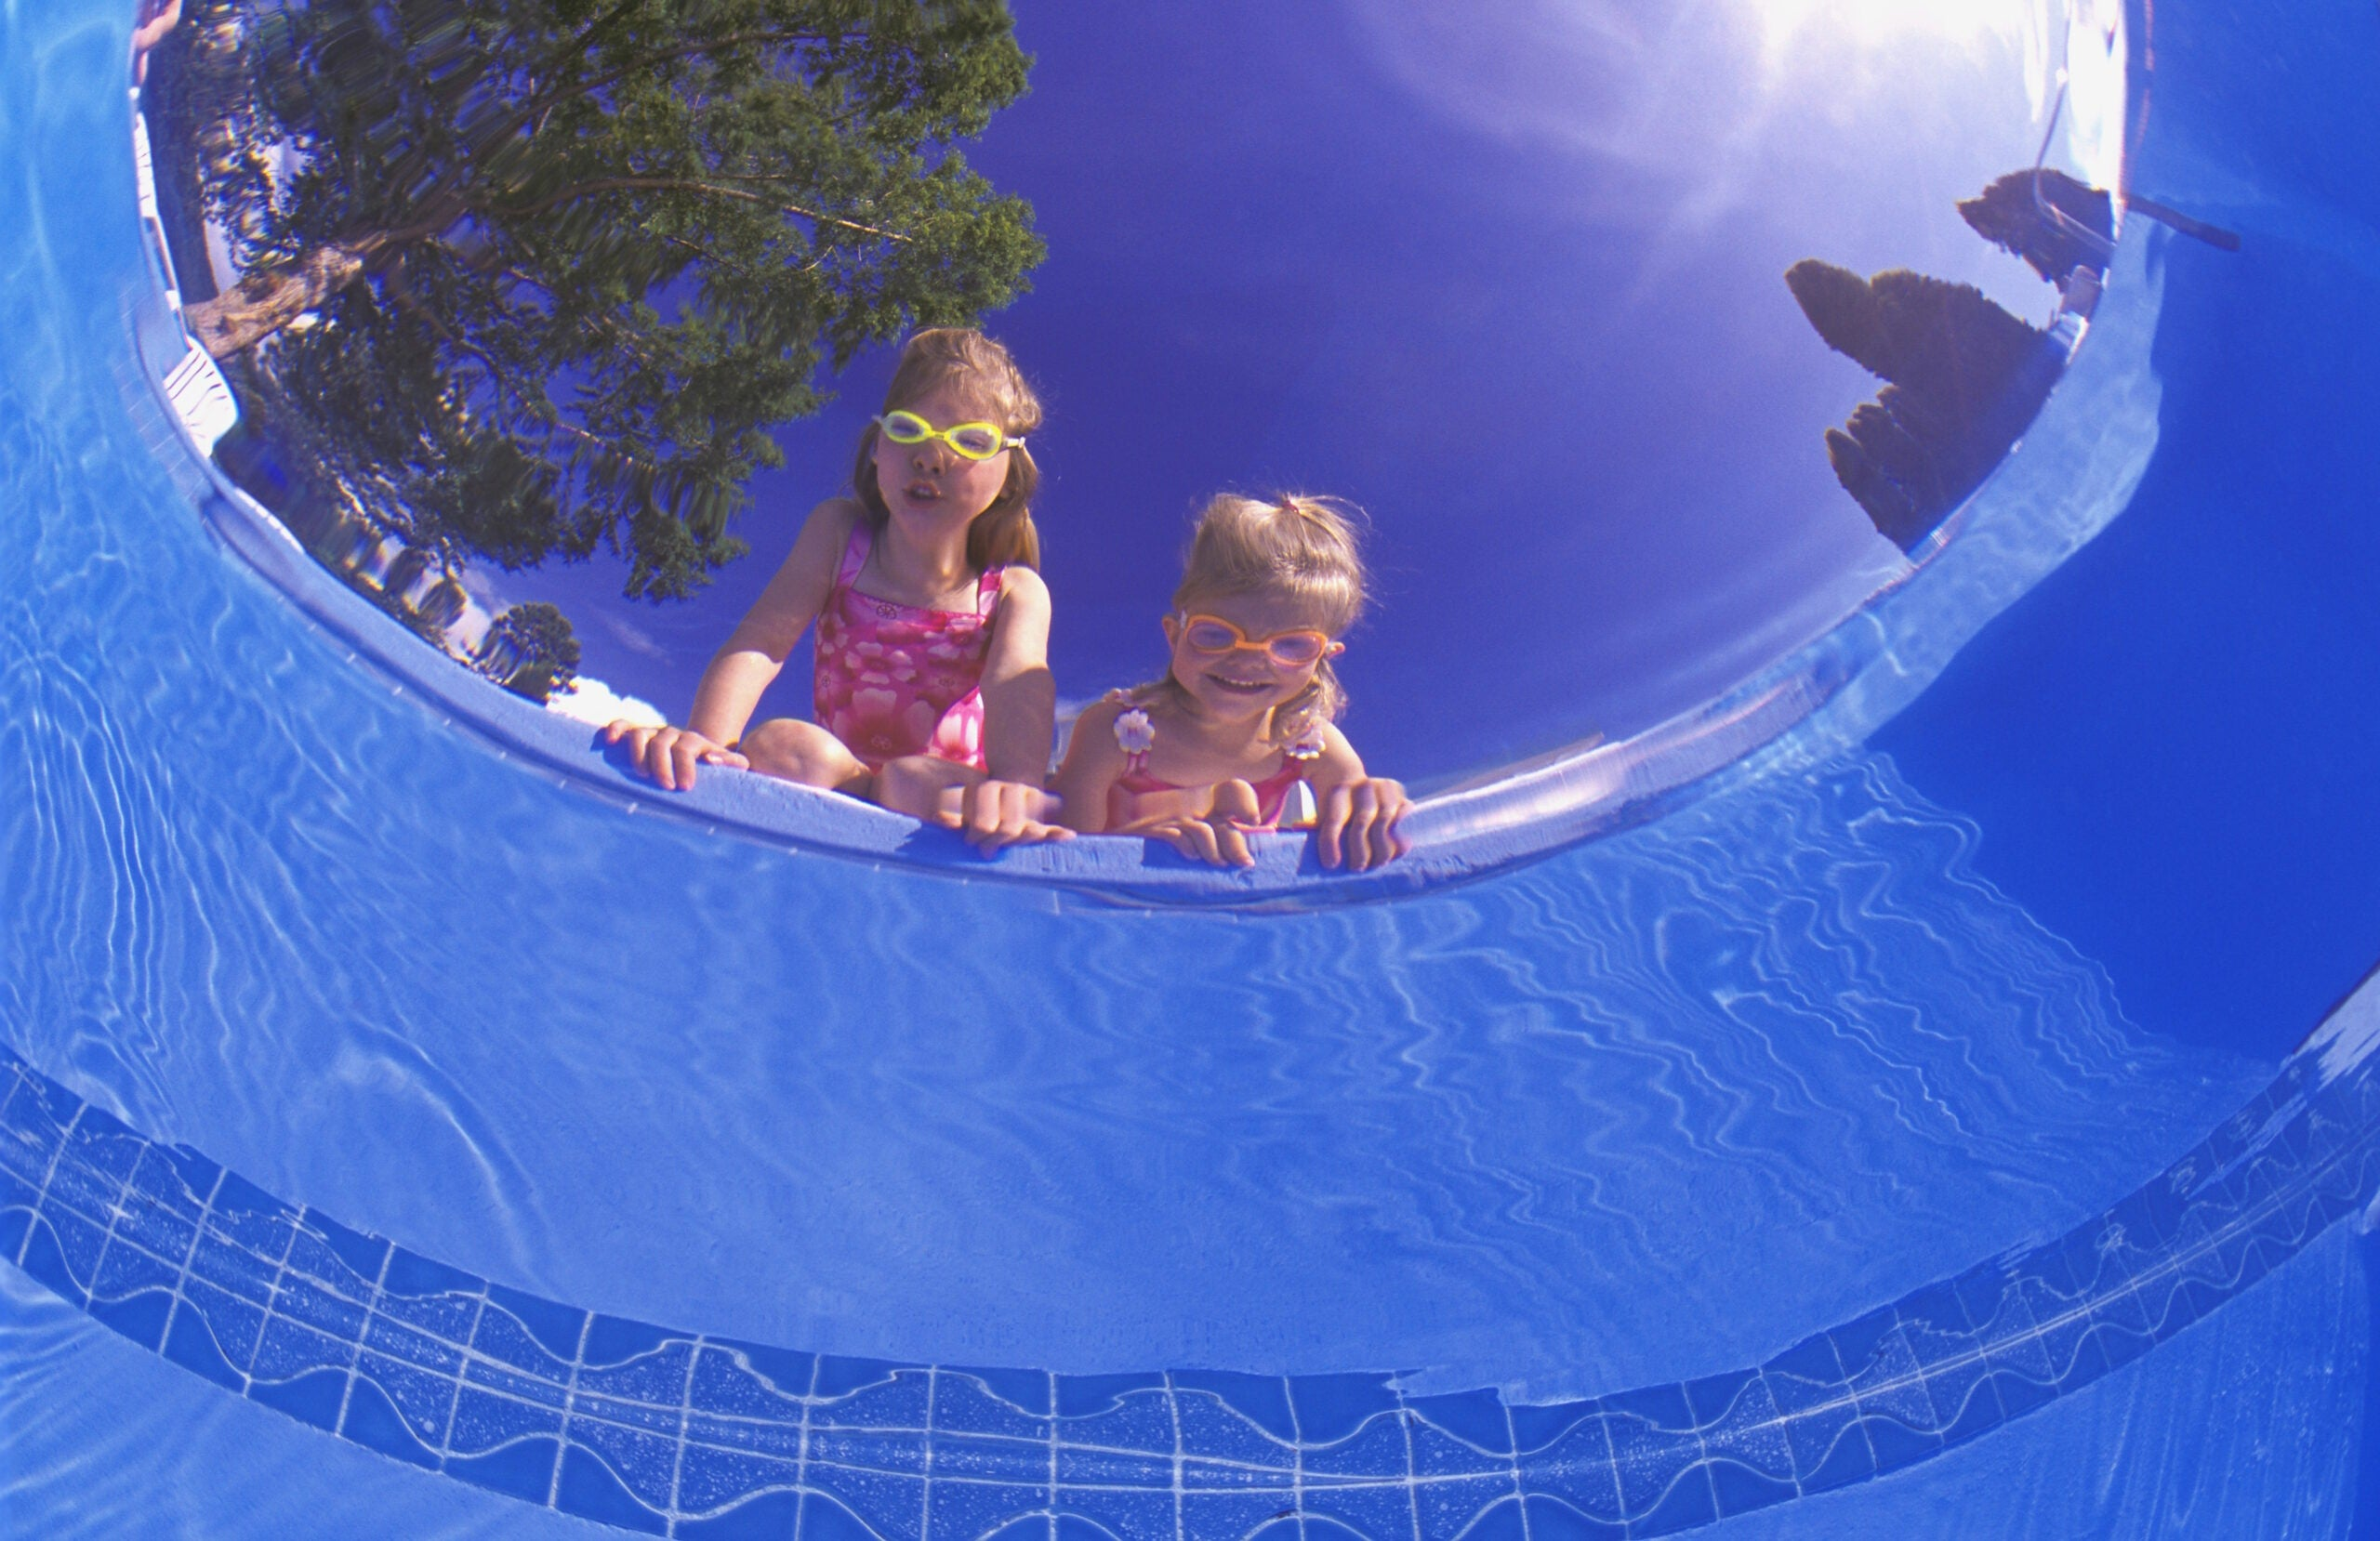 two kids stare down into a pool